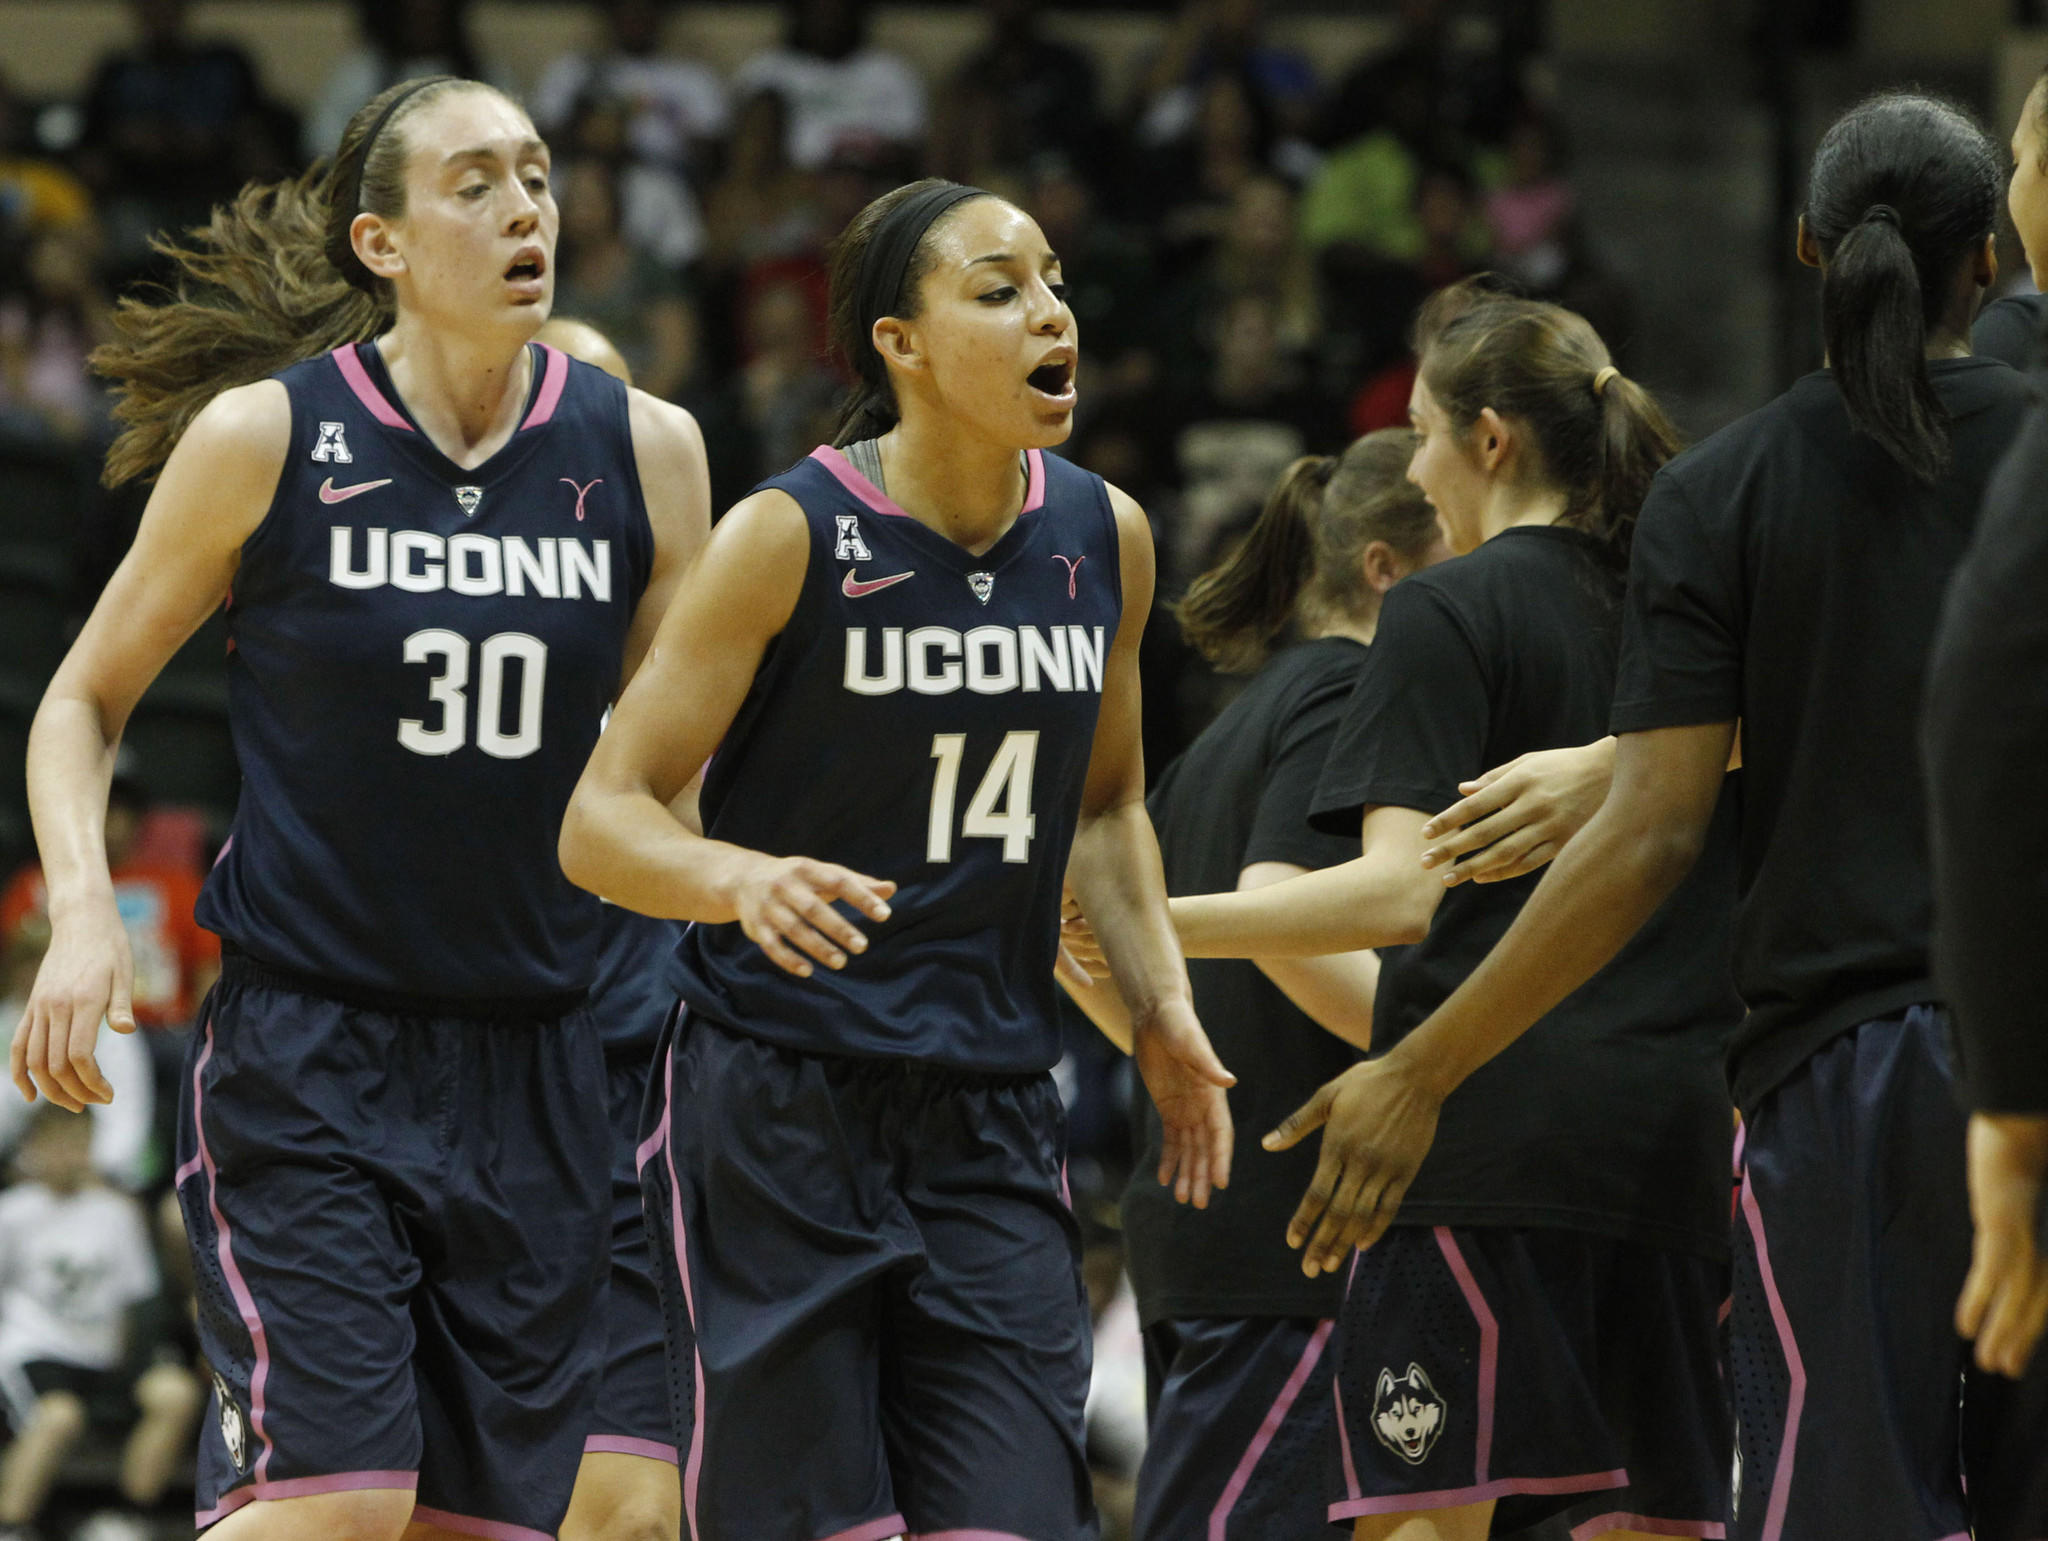 Feb 16, 2014; Tampa, FL, USA; Connecticut Huskies guard Bria Hartley (14) celebrates with forward Breanna Stewart (30) against the South Florida Bulls during the second half at USF Sun Dome. The Huskies won 63-38. Mandatory Credit: Kim Klement-USA TODAY Sports ORG XMIT: USATSI-162378